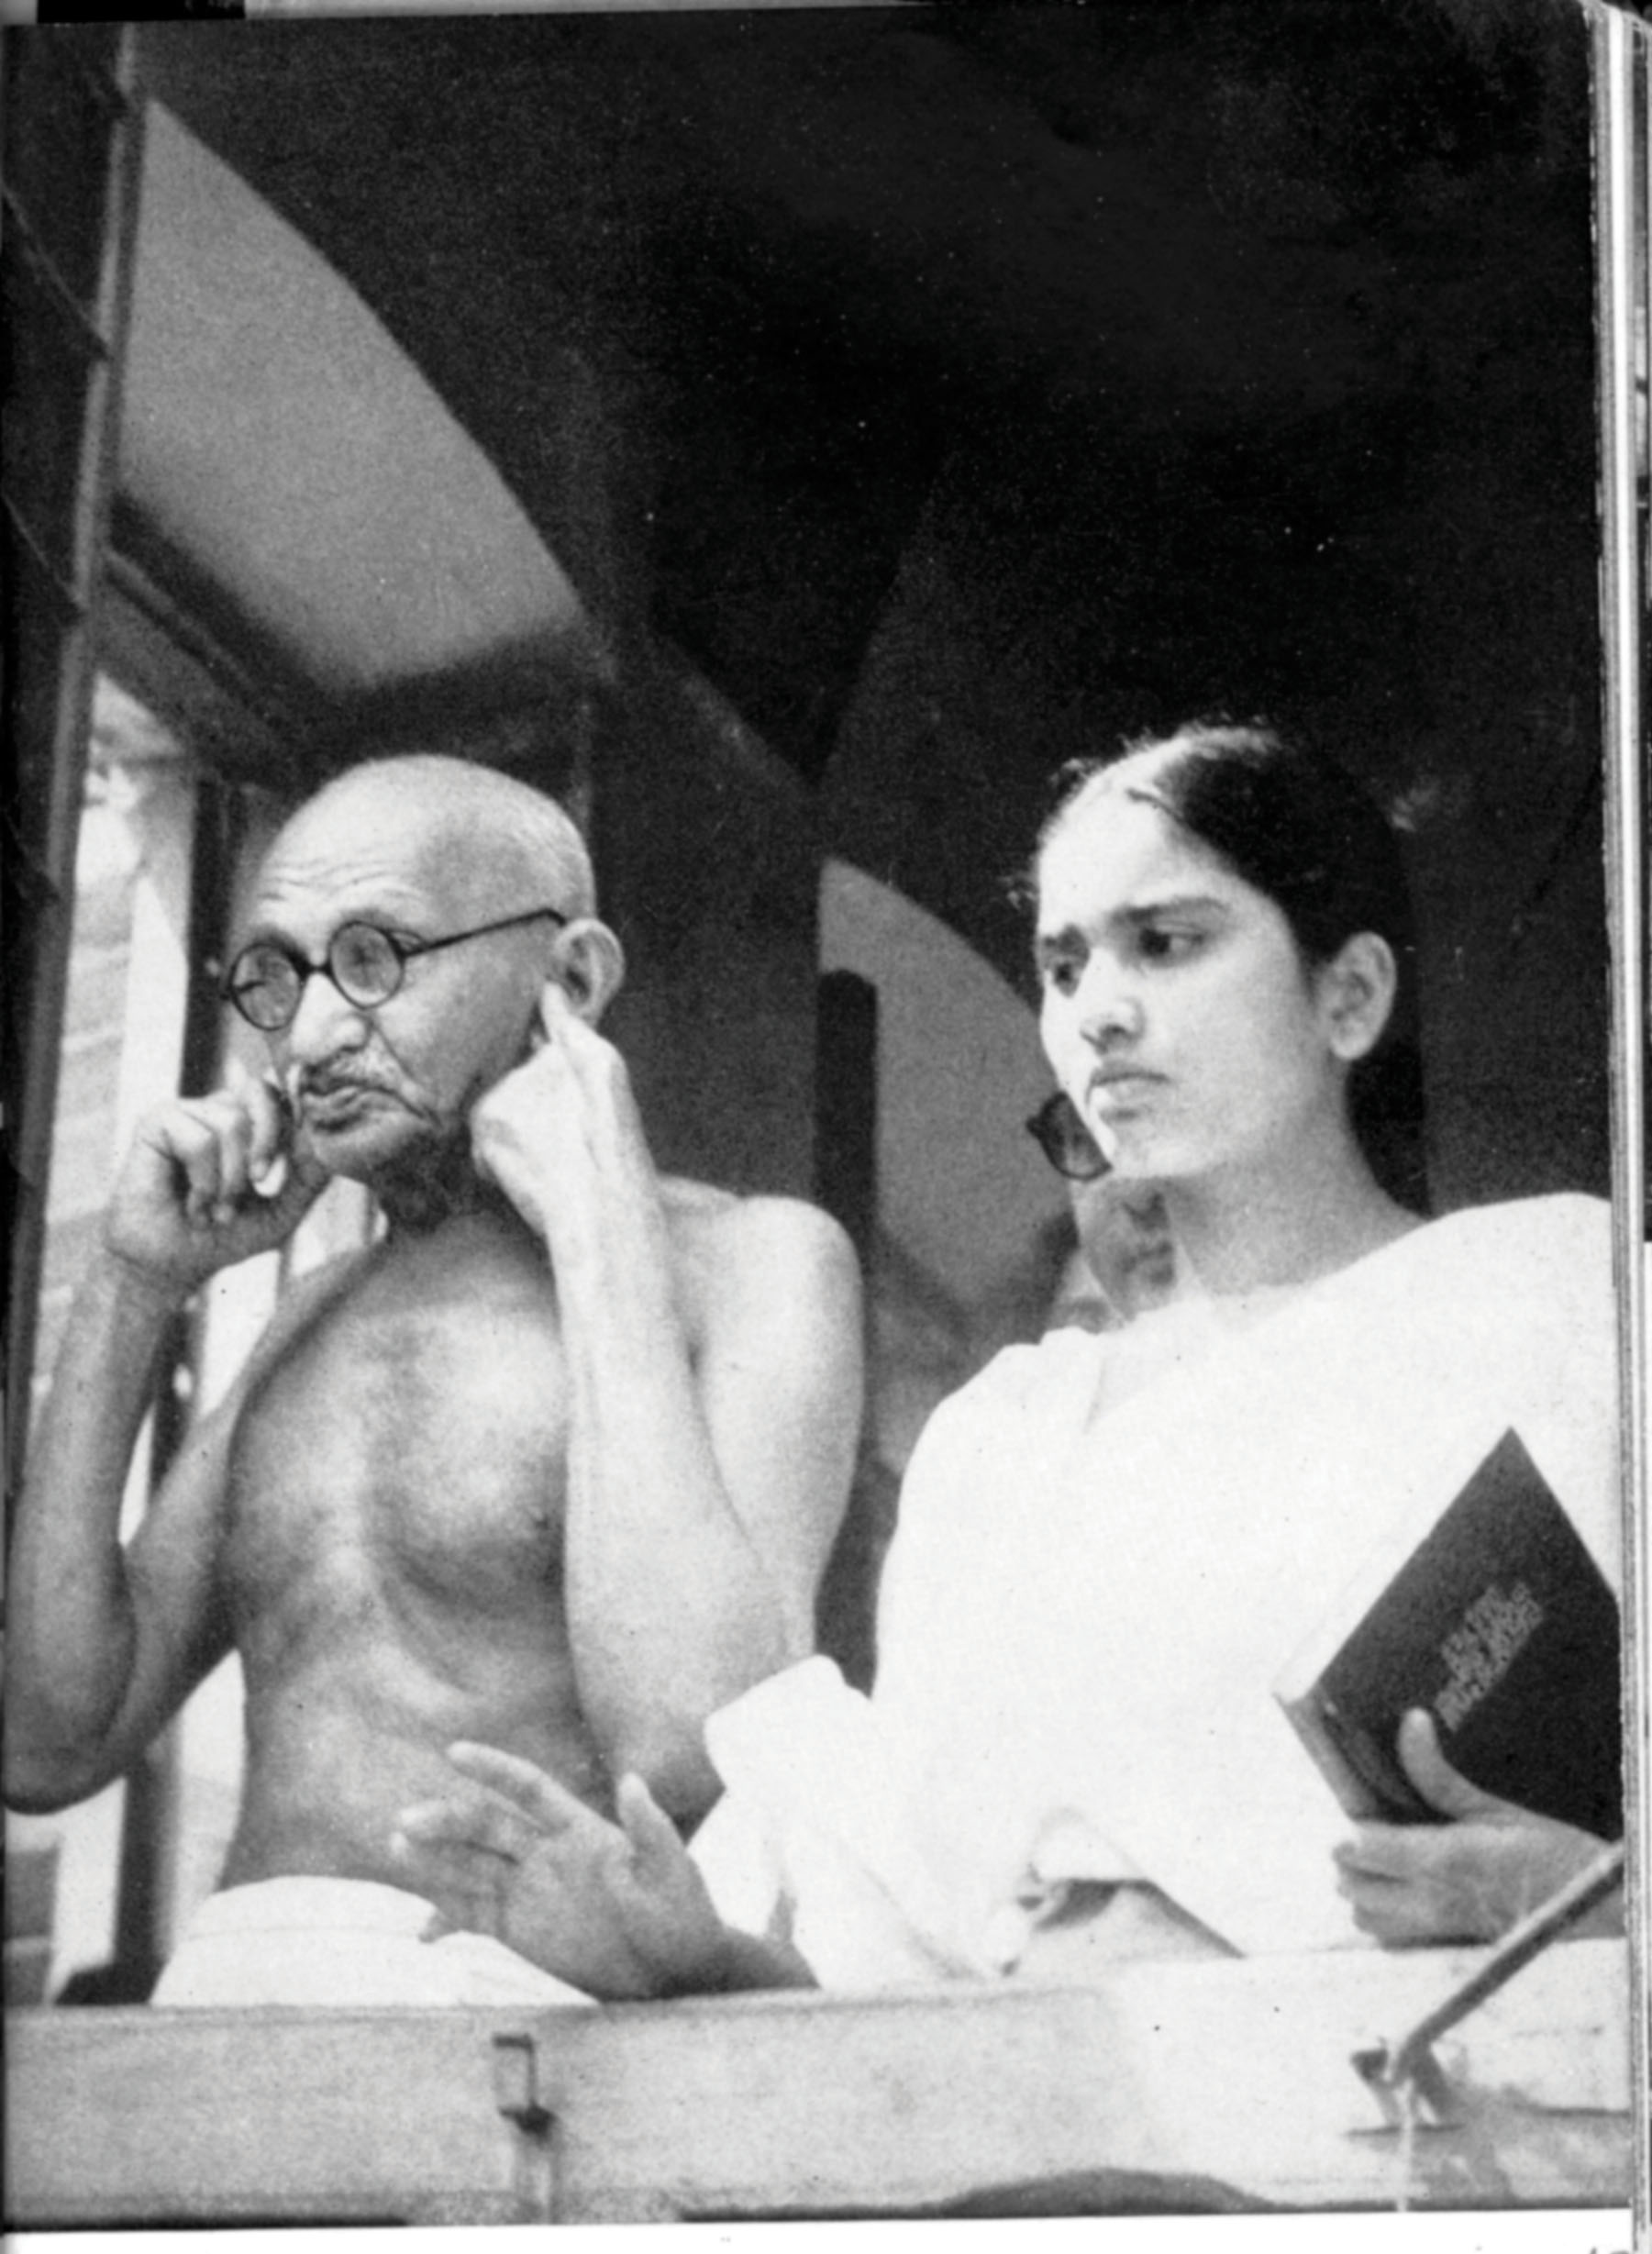 Gandhi with his grandniece Manubehn in Calcutta. On the day of Independence Gandhi was in this city with Bengal Prime Minister Huseyn Shaheed Suhrawardy, pressing for communal peace. Credit: Private Collections